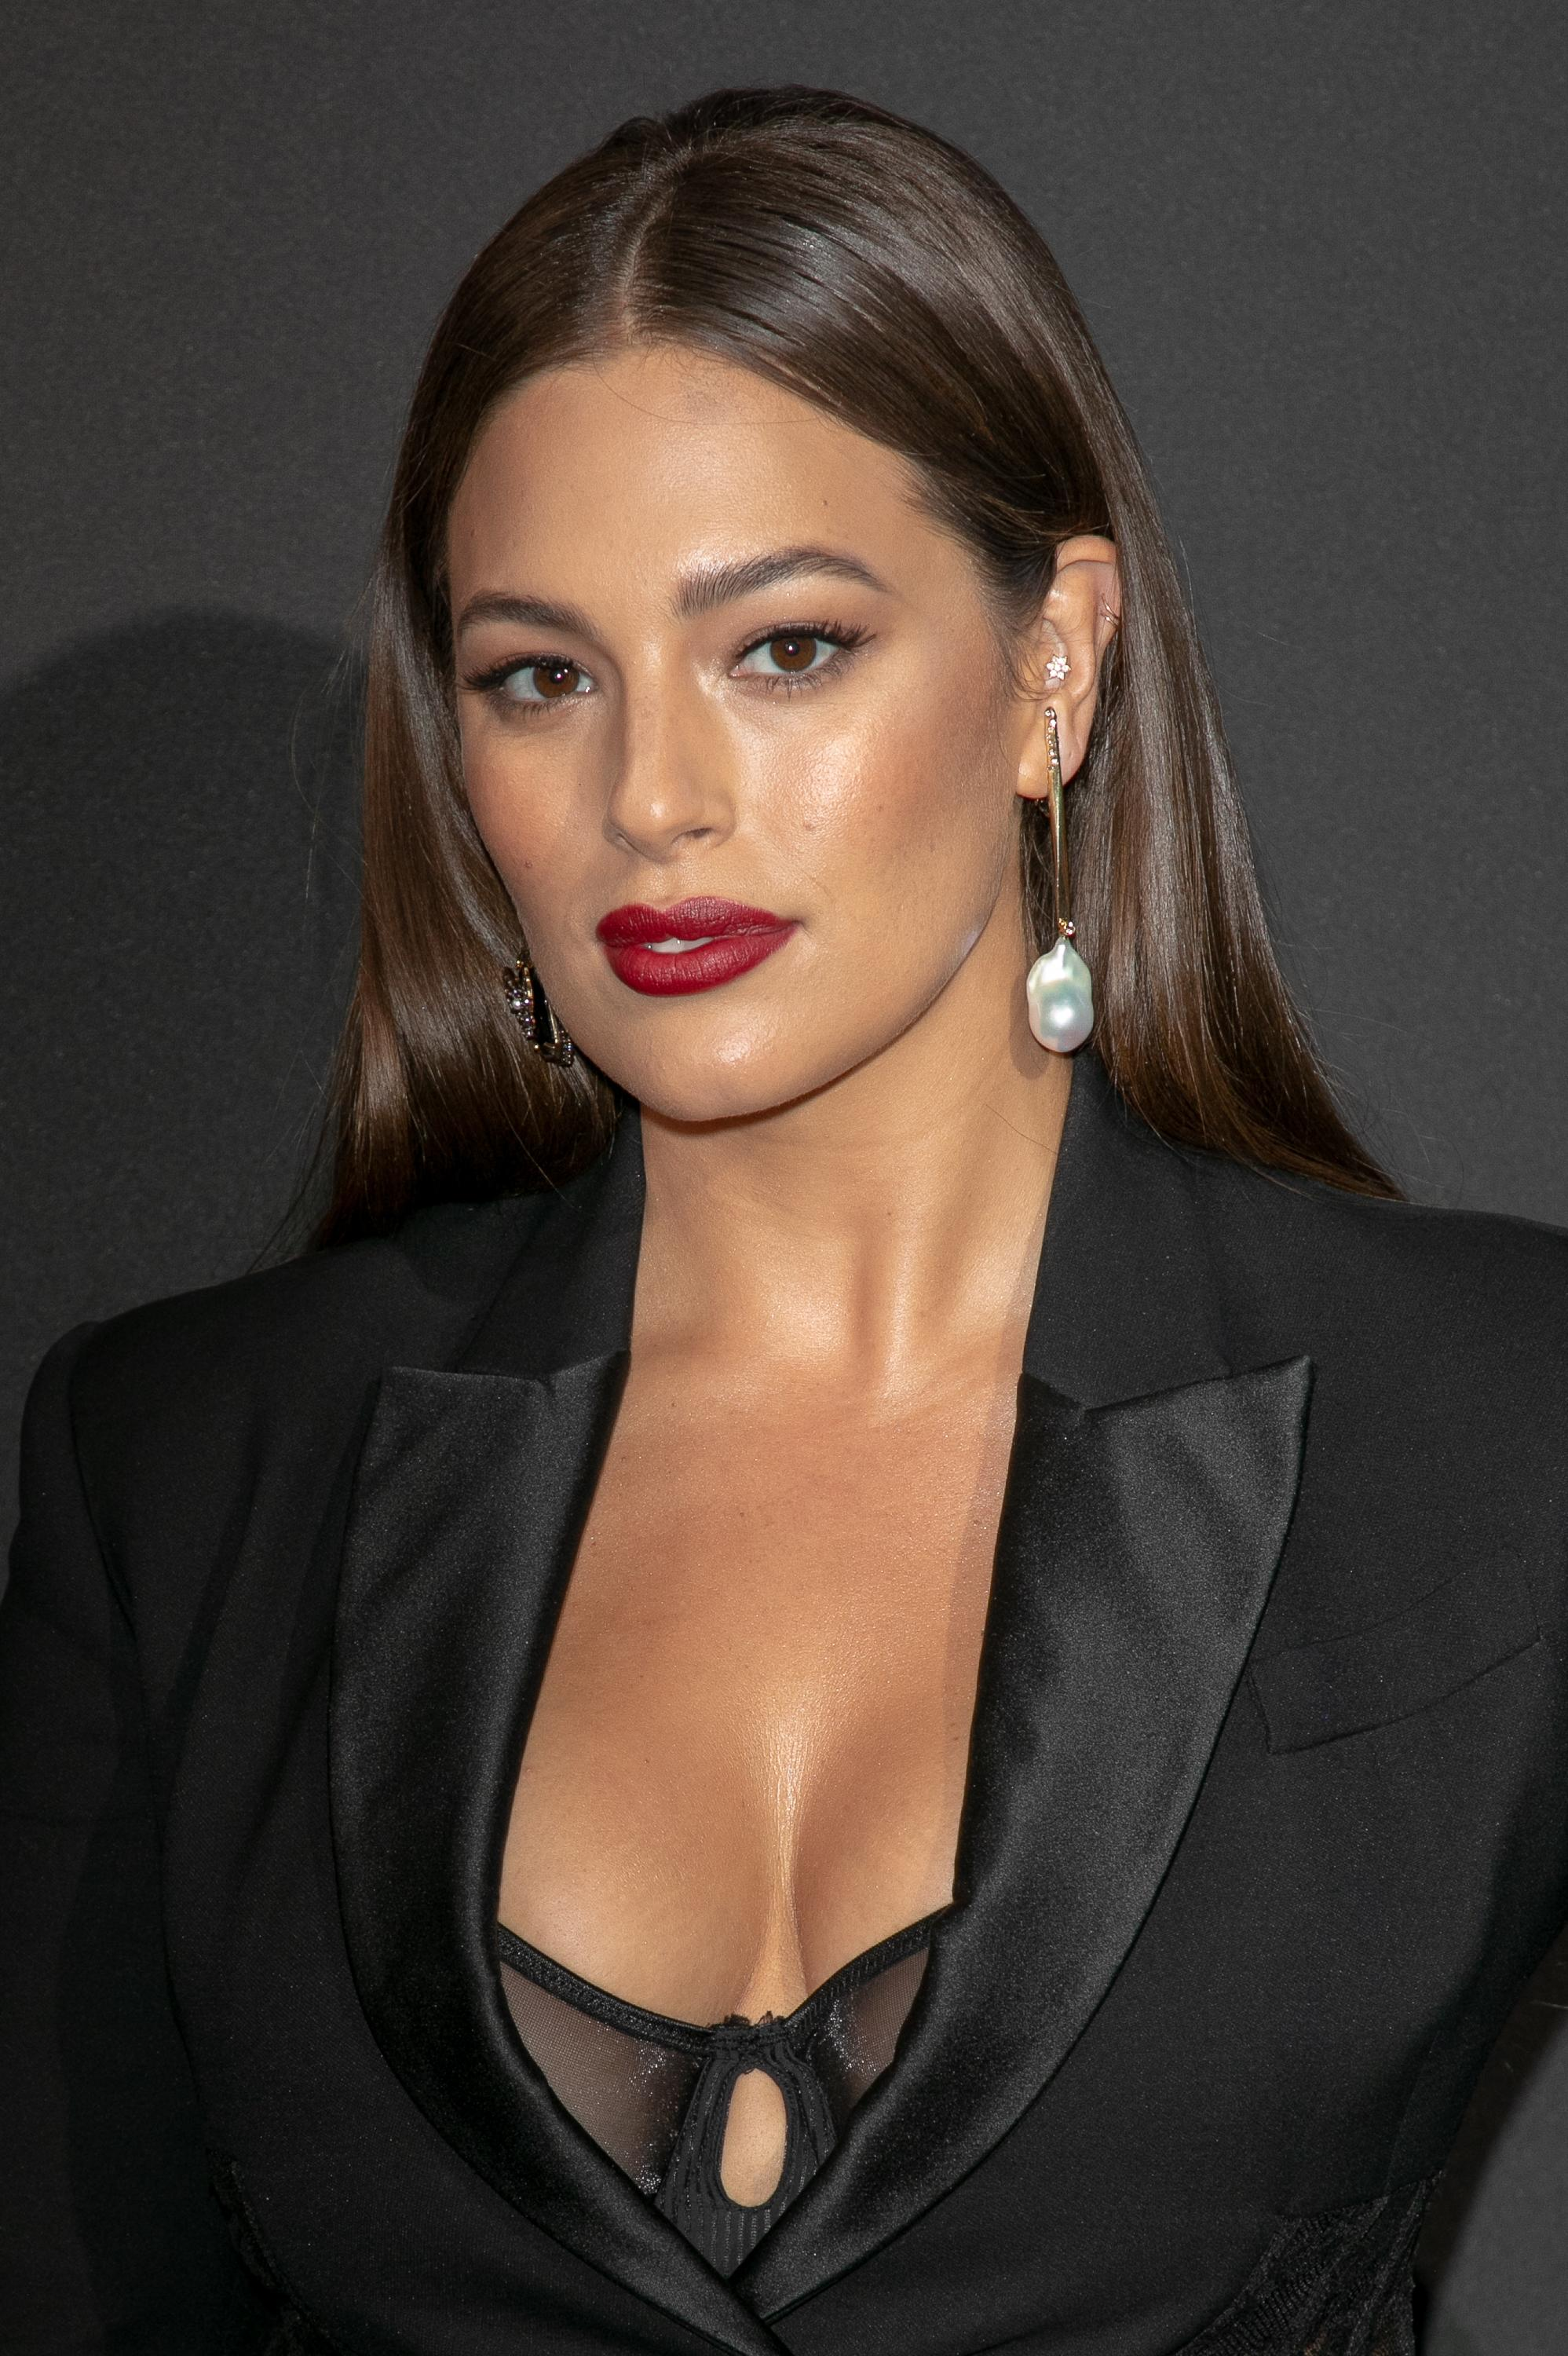 Ashley Graham Says Ex-Boyfriends Have Left Her Over Her Weight, Called Her TooFat' Ashley Graham Says Ex-Boyfriends Have Left Her Over Her Weight, Called Her TooFat' new images